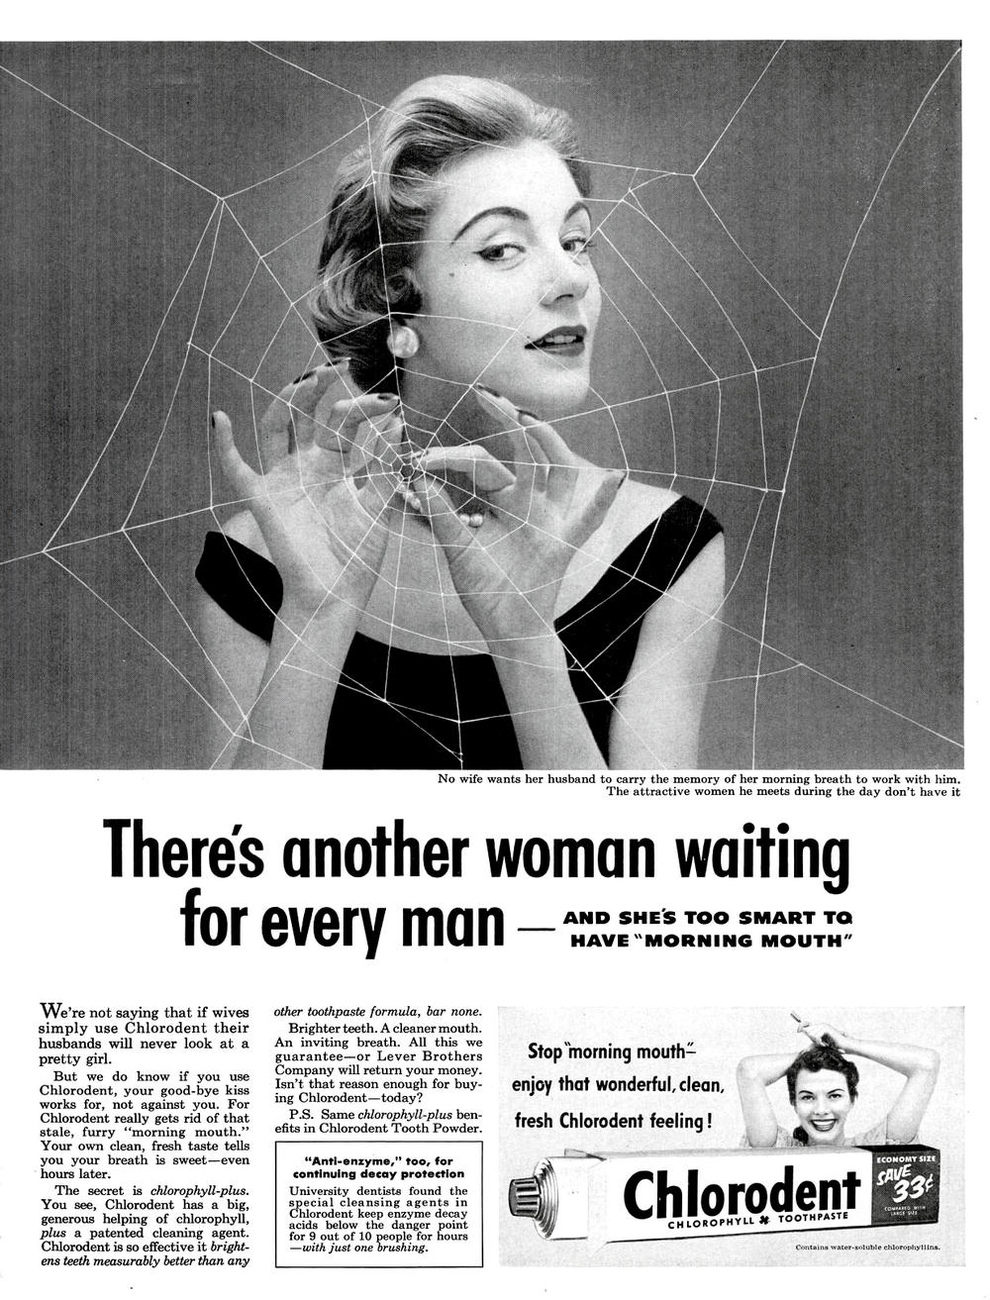 Image source http://www.spectacledmarketer.com/wp-content/uploads/2013/10/9_Vintage_Ad.jpg - Obvious gender role issues aside - A vintage Chlorodent ad